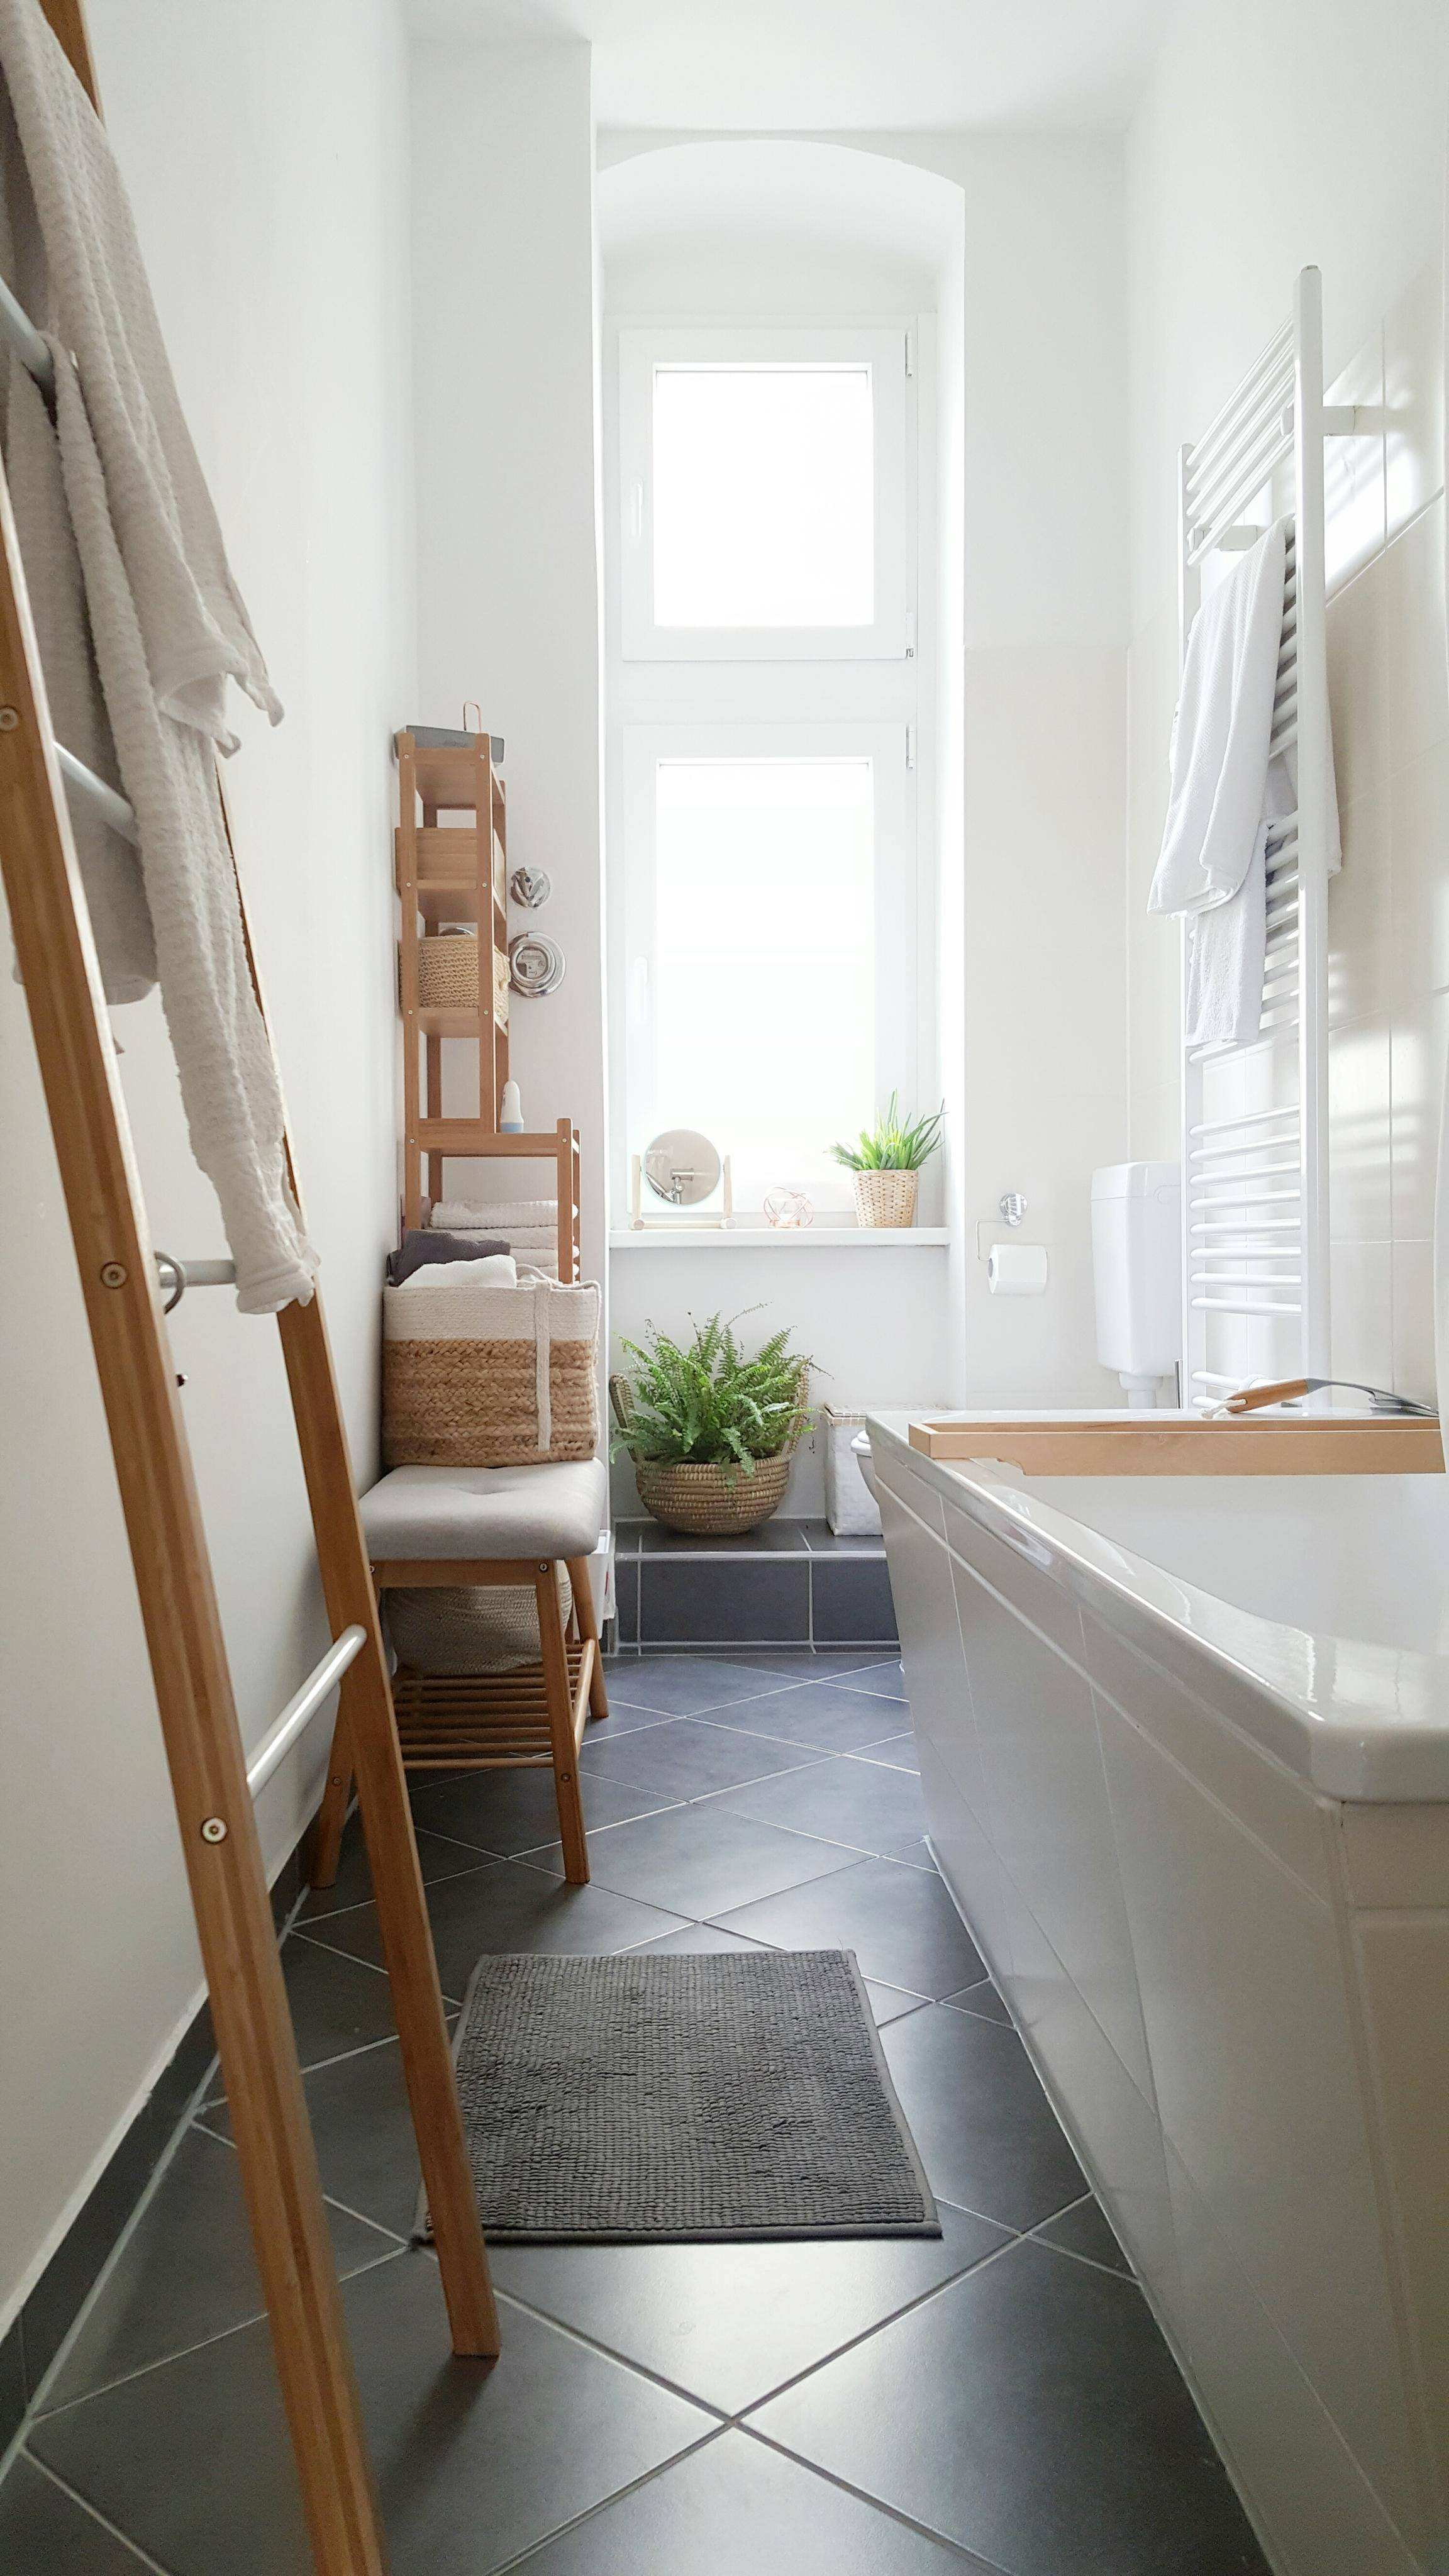 Badezimmer Ideen Bilder Badezimmer • Bilder & Ideen • Couchstyle